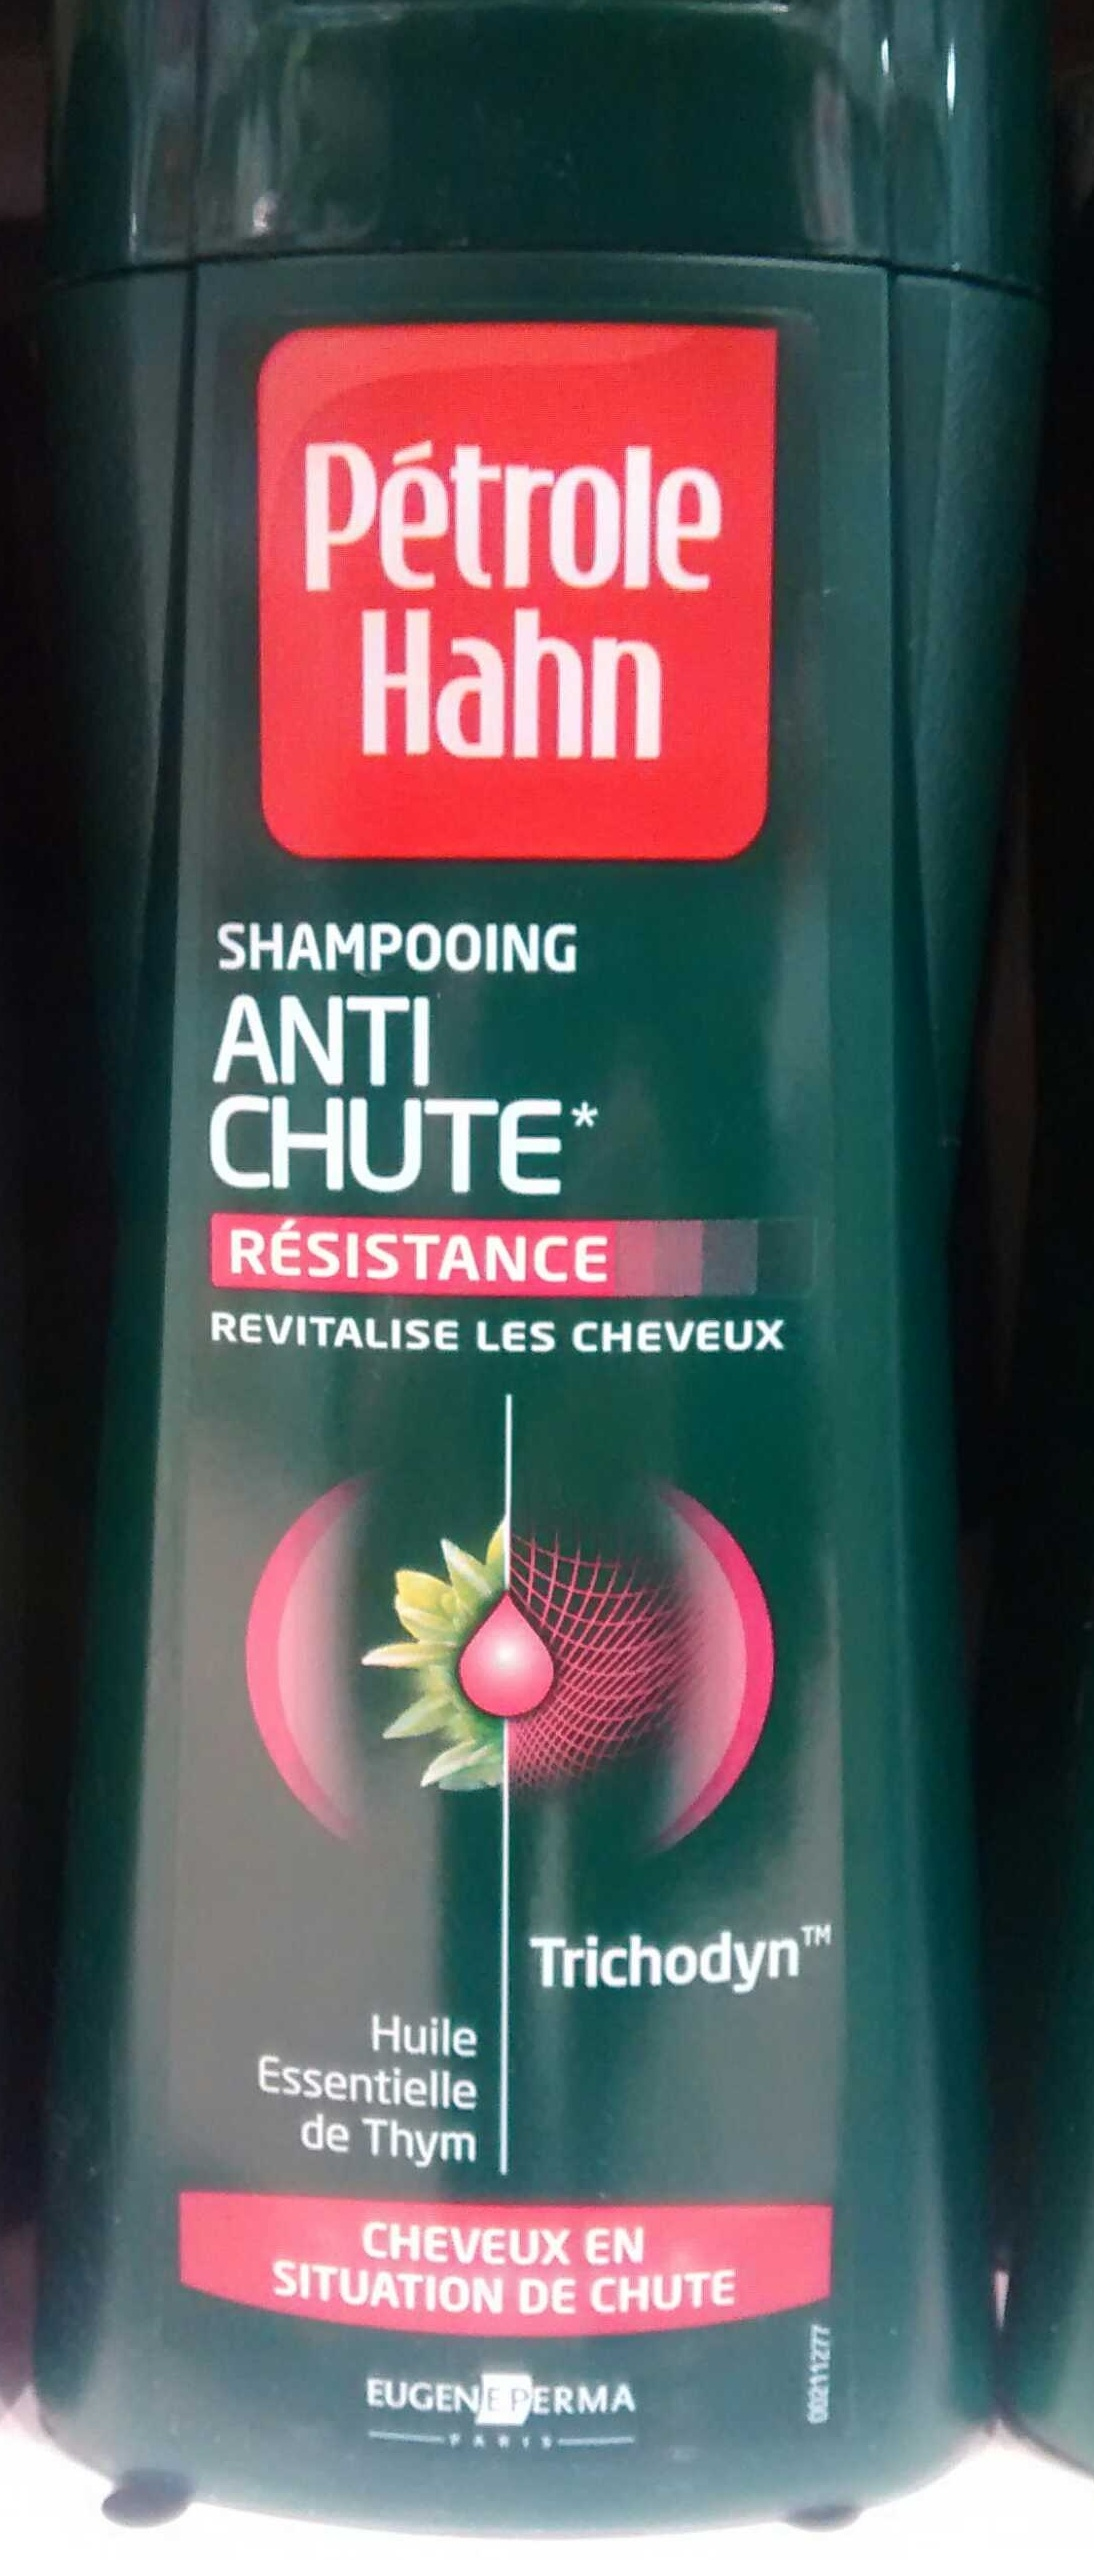 Shampooing anti chute résistance - Product